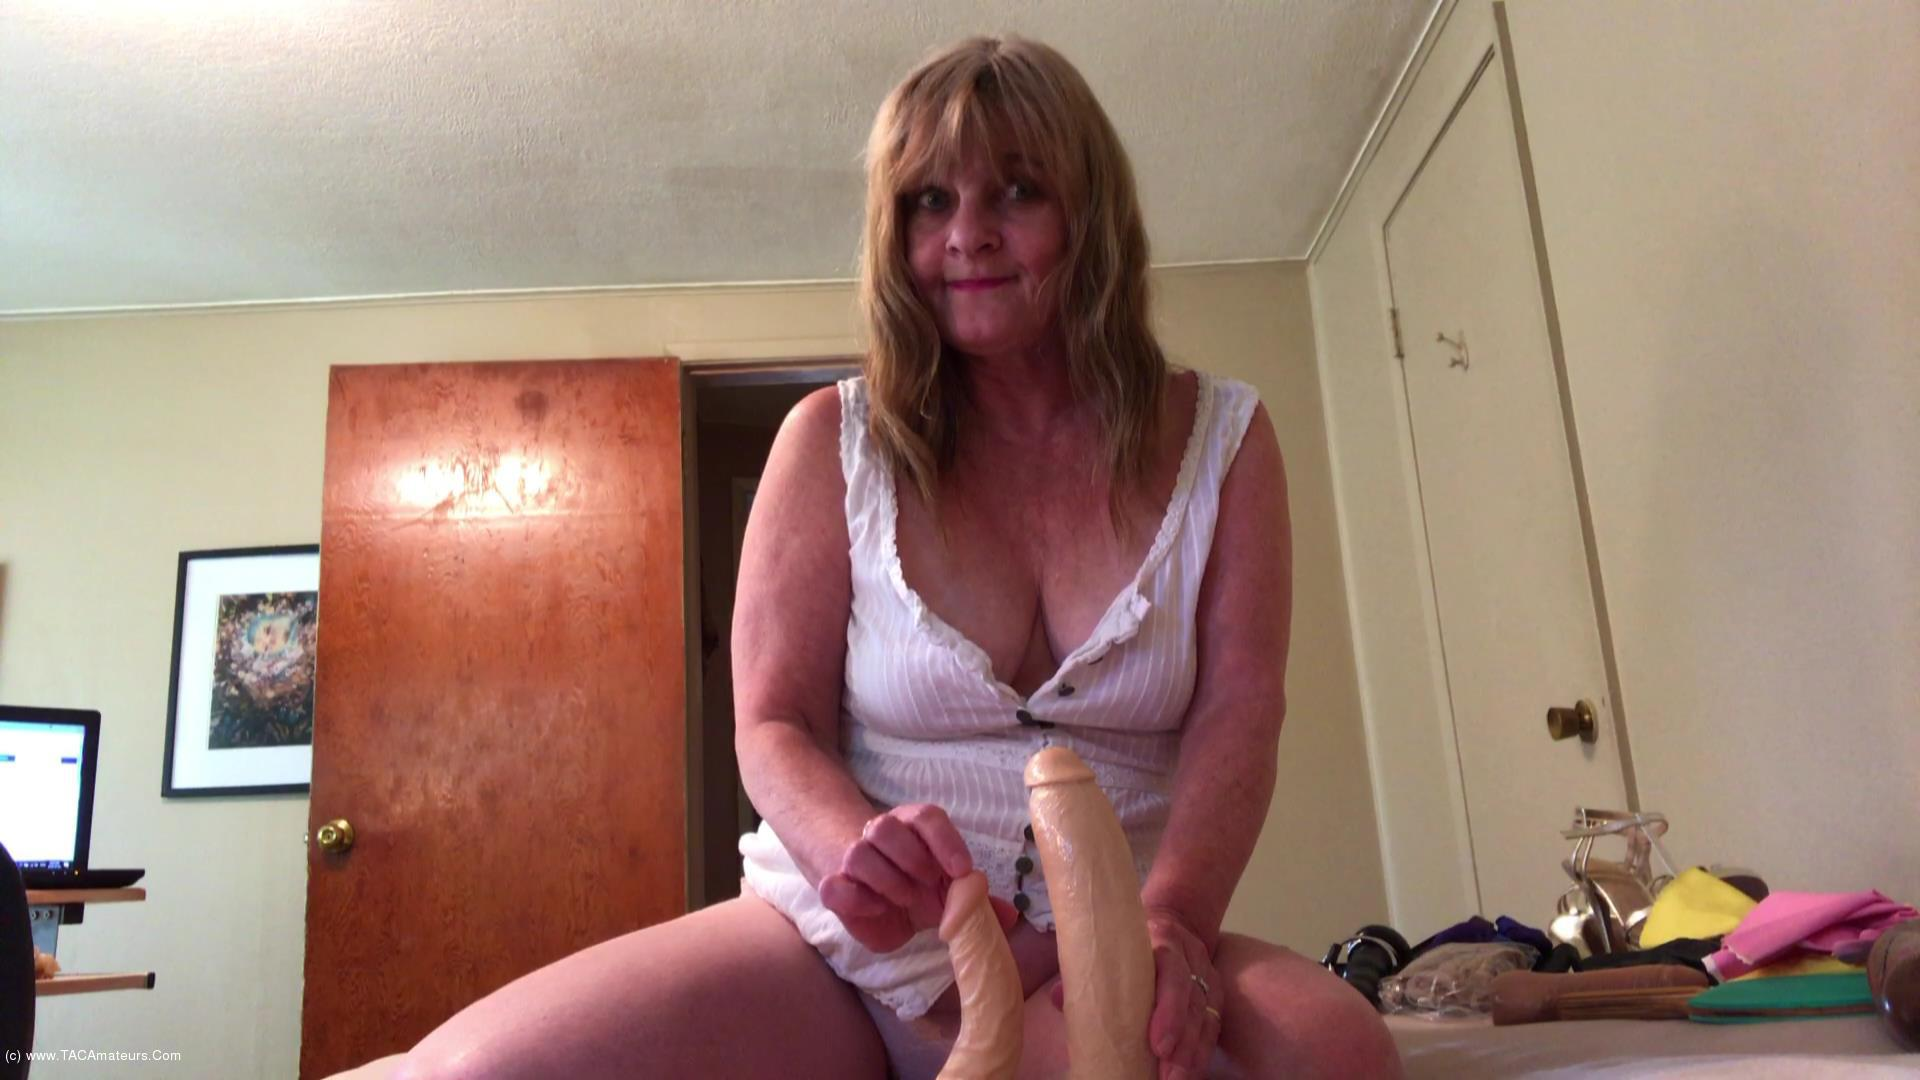 CougarBabeJolee - Filthy Milfy scene 1